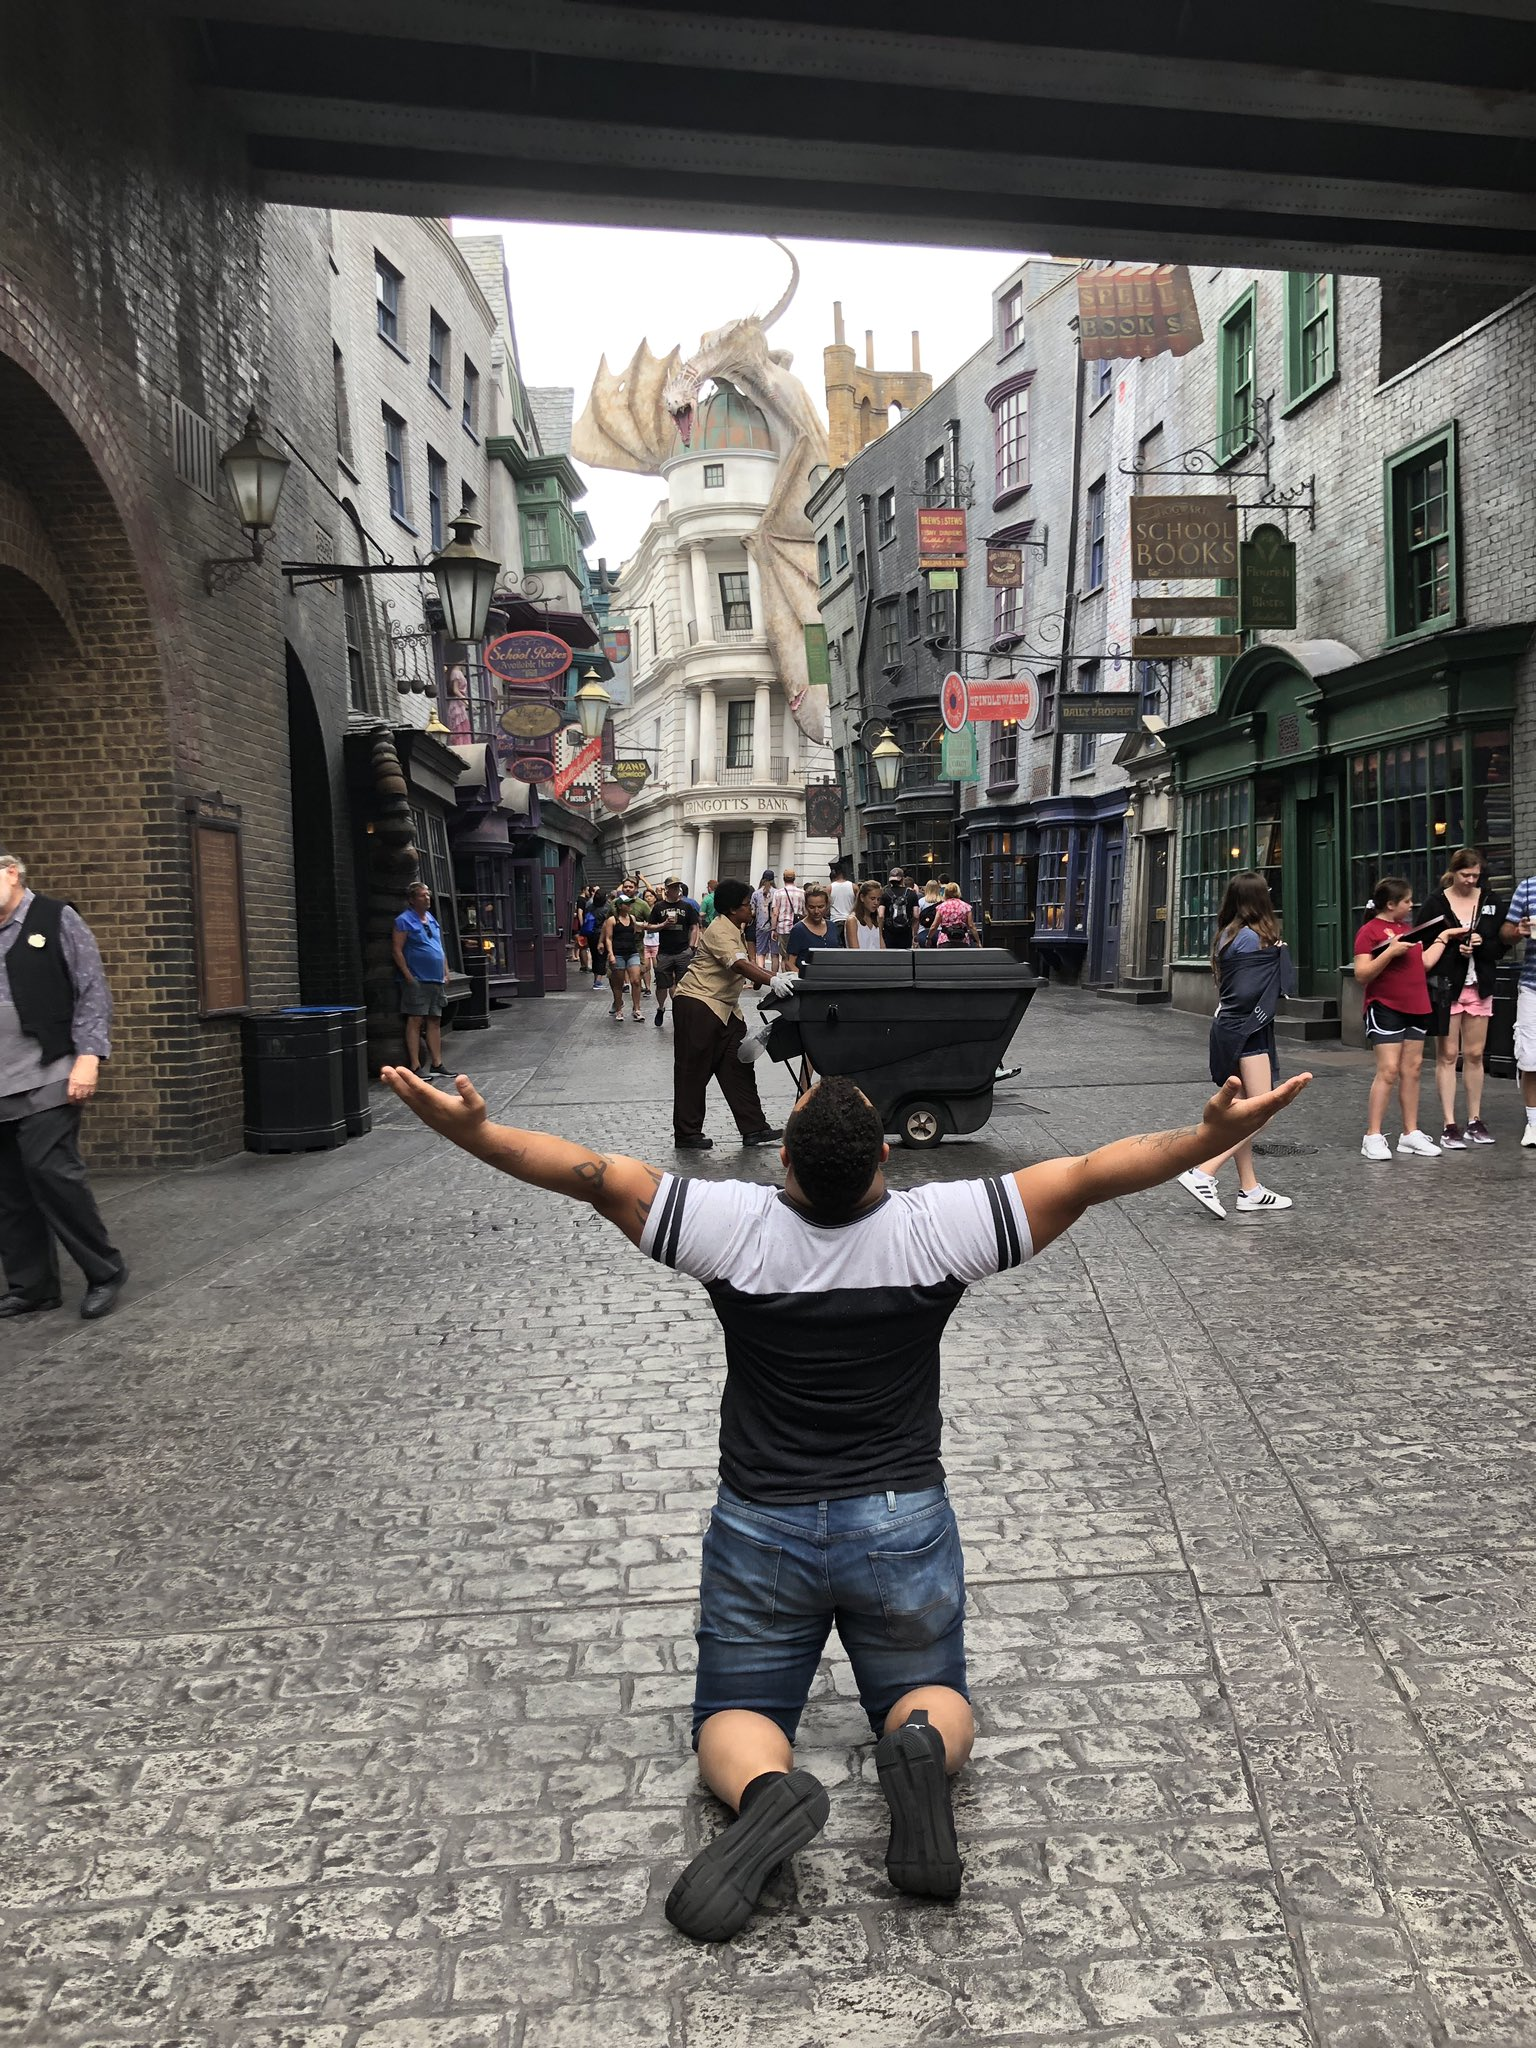 I m right we re i belong happy birthday to me i will always be a kid to Harry Potter.